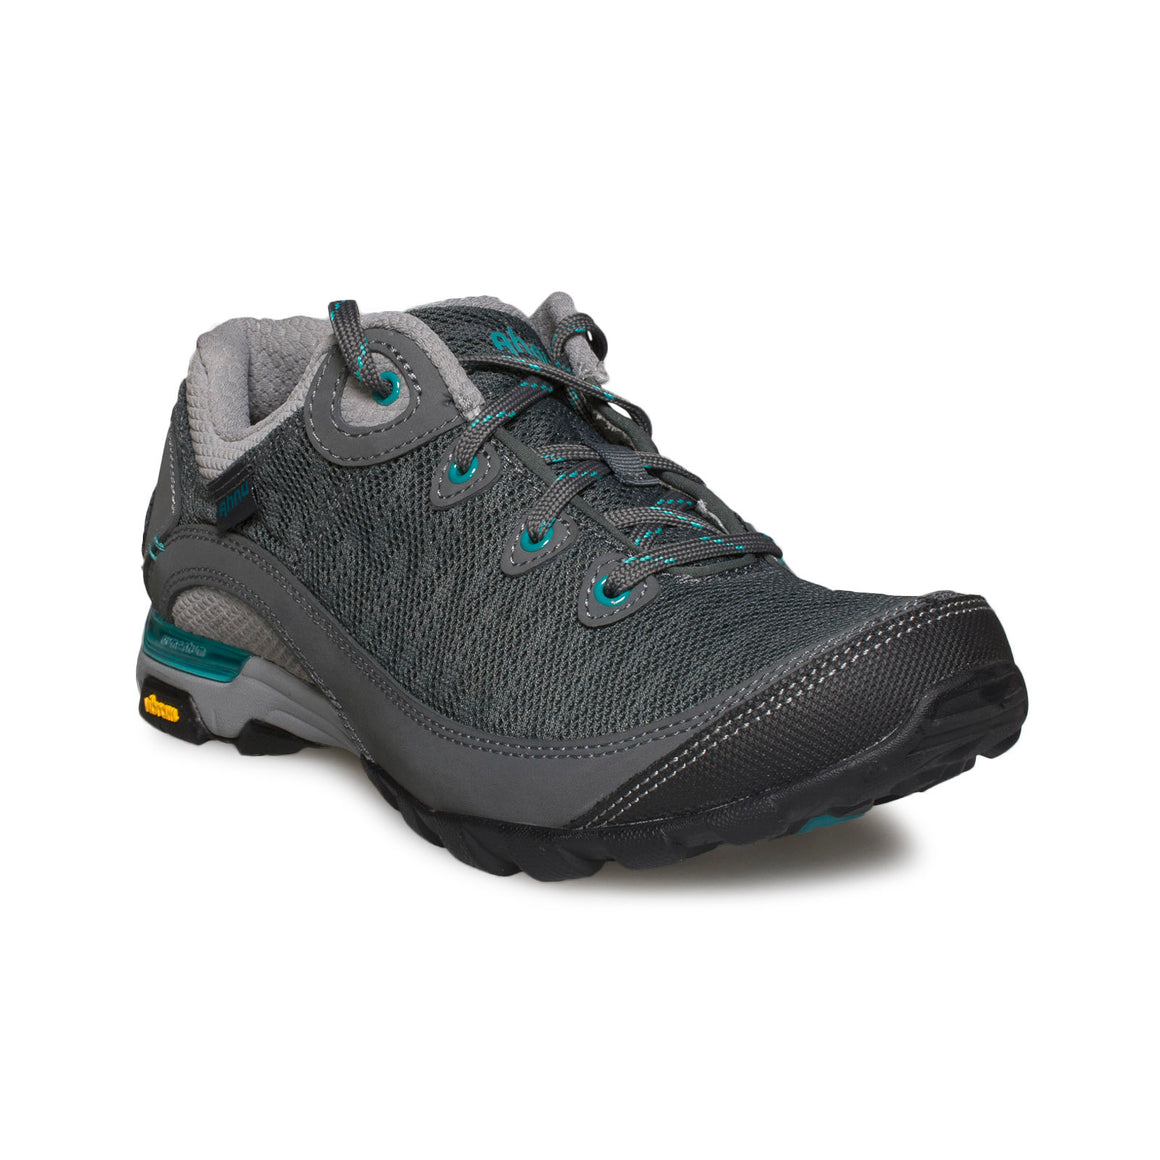 Ahnu Sugarpine II Air Mesh Dark Shadow Shoes - Women's